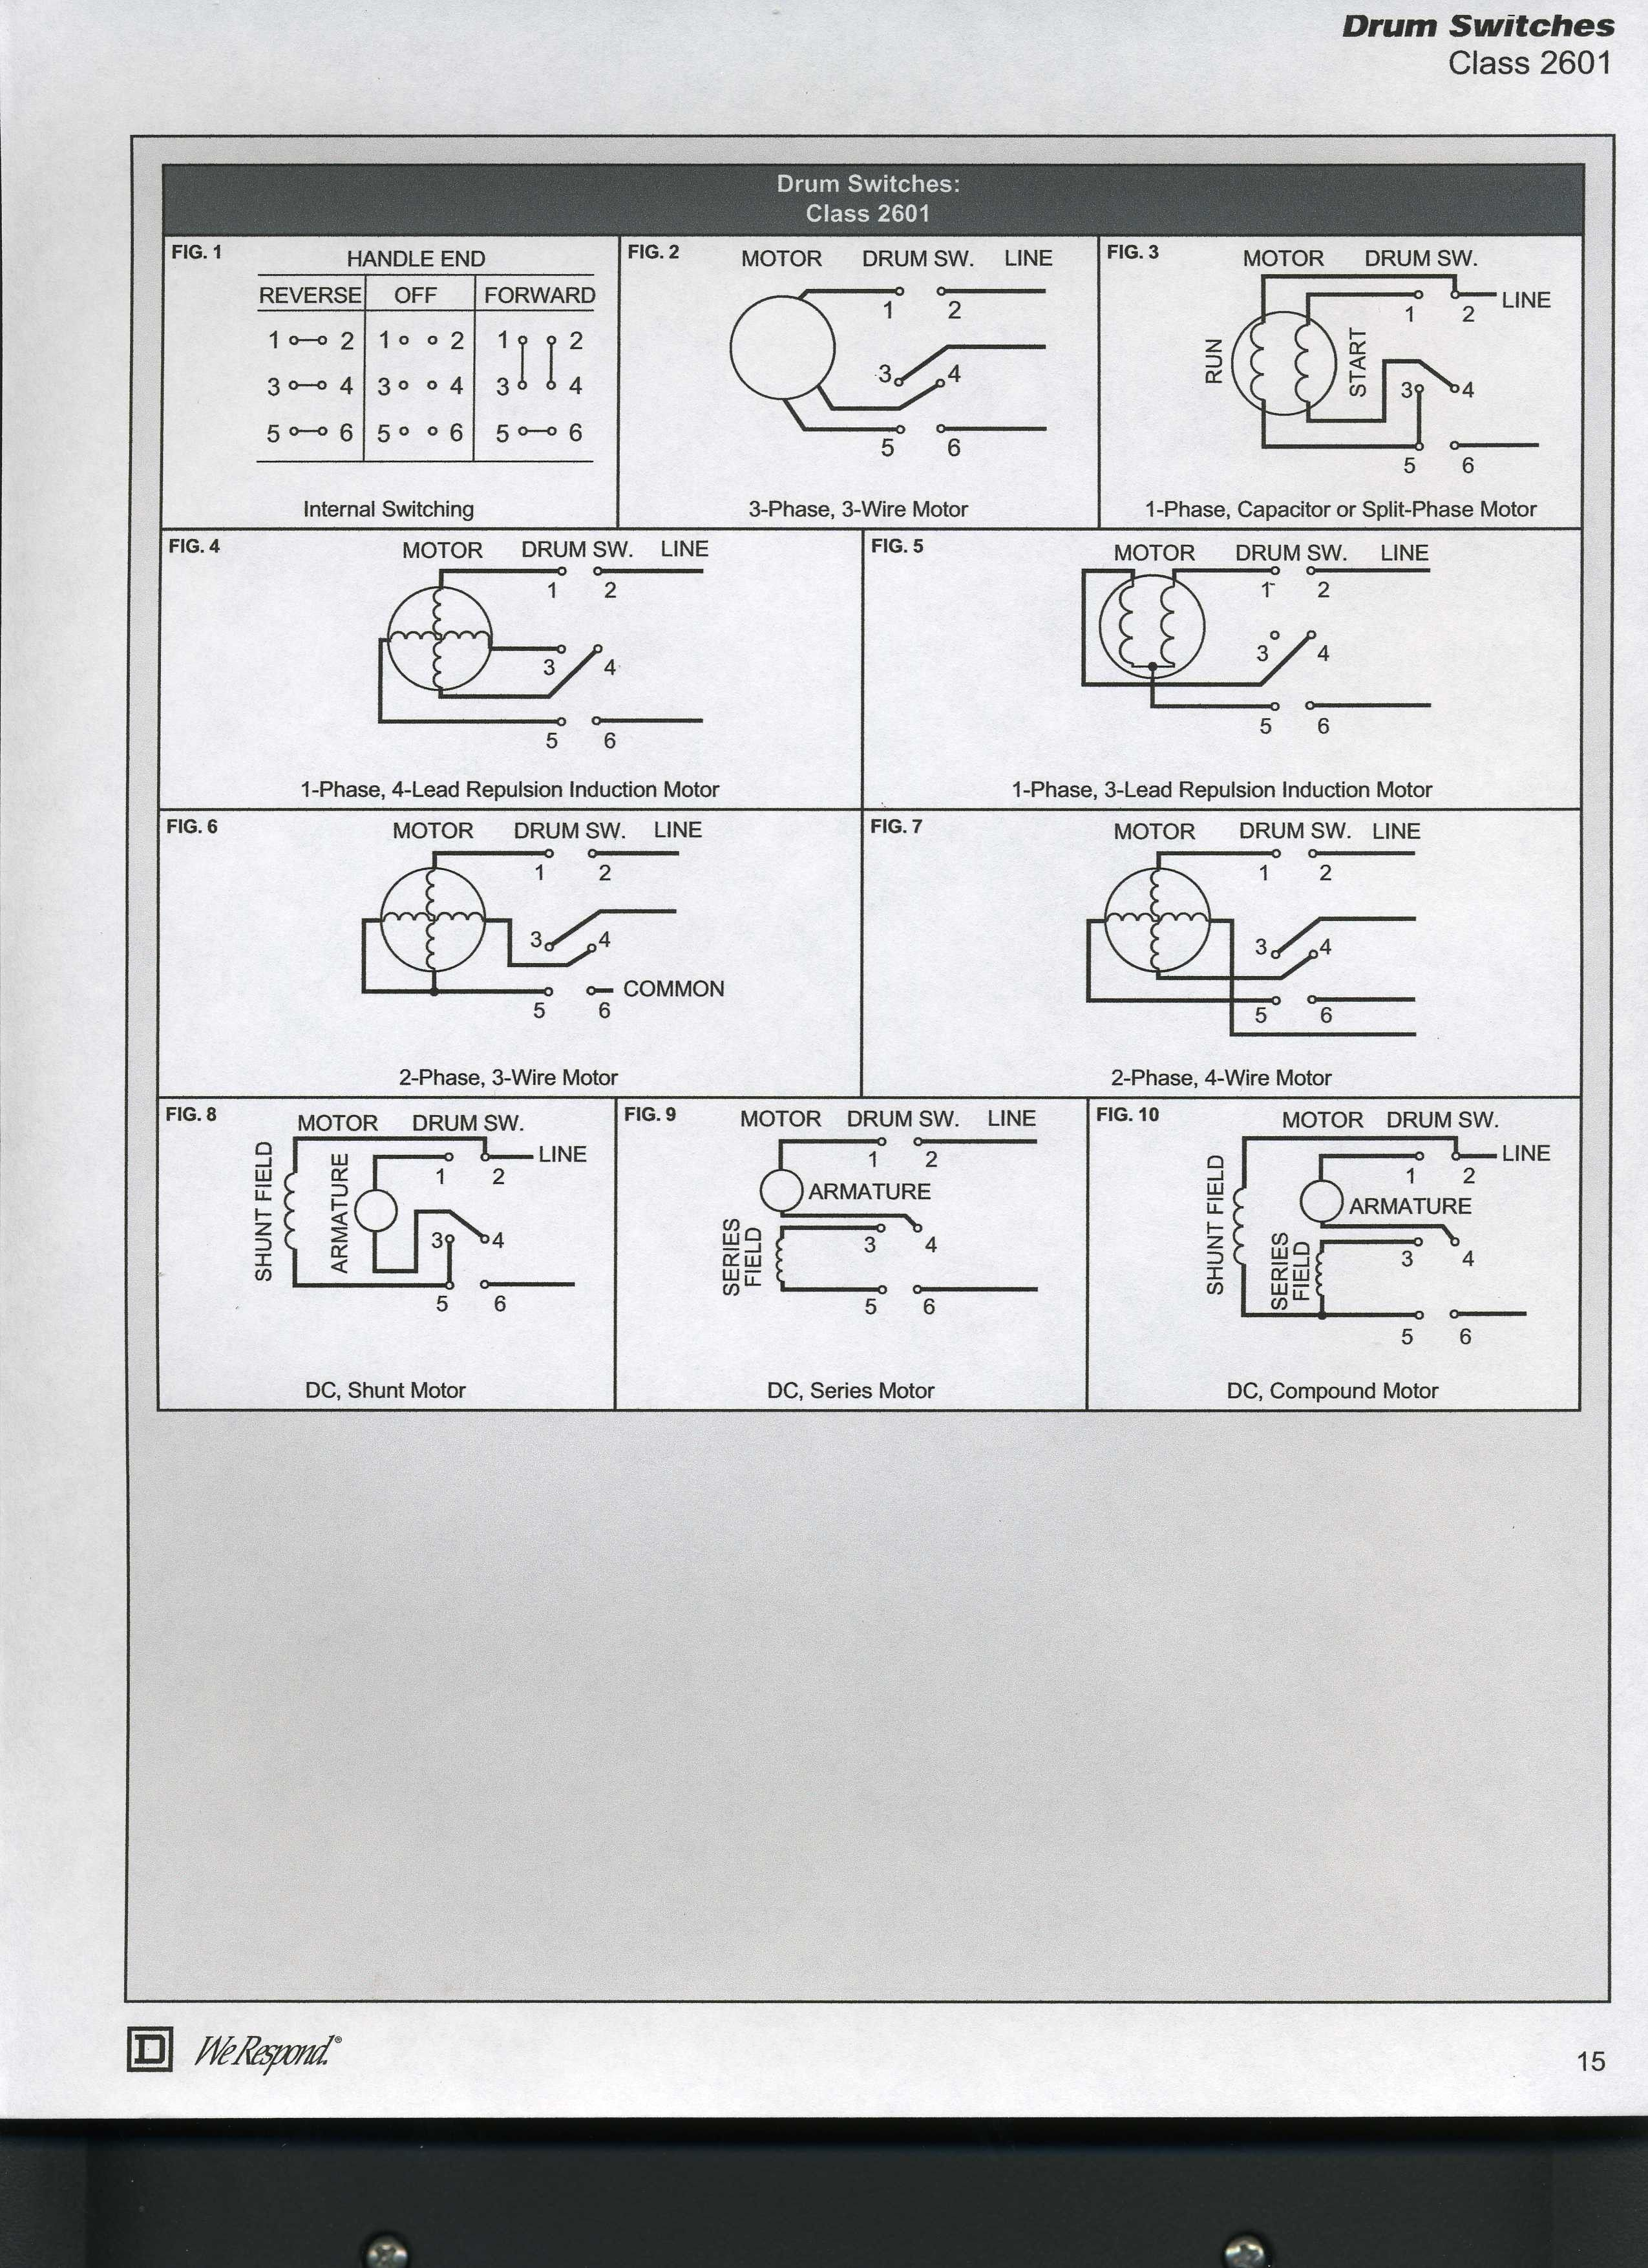 hight resolution of unique wiring diagram baldor electric motor diagram diagramsampleunique wiring diagram baldor electric motor diagram diagramsample diagramtemplate